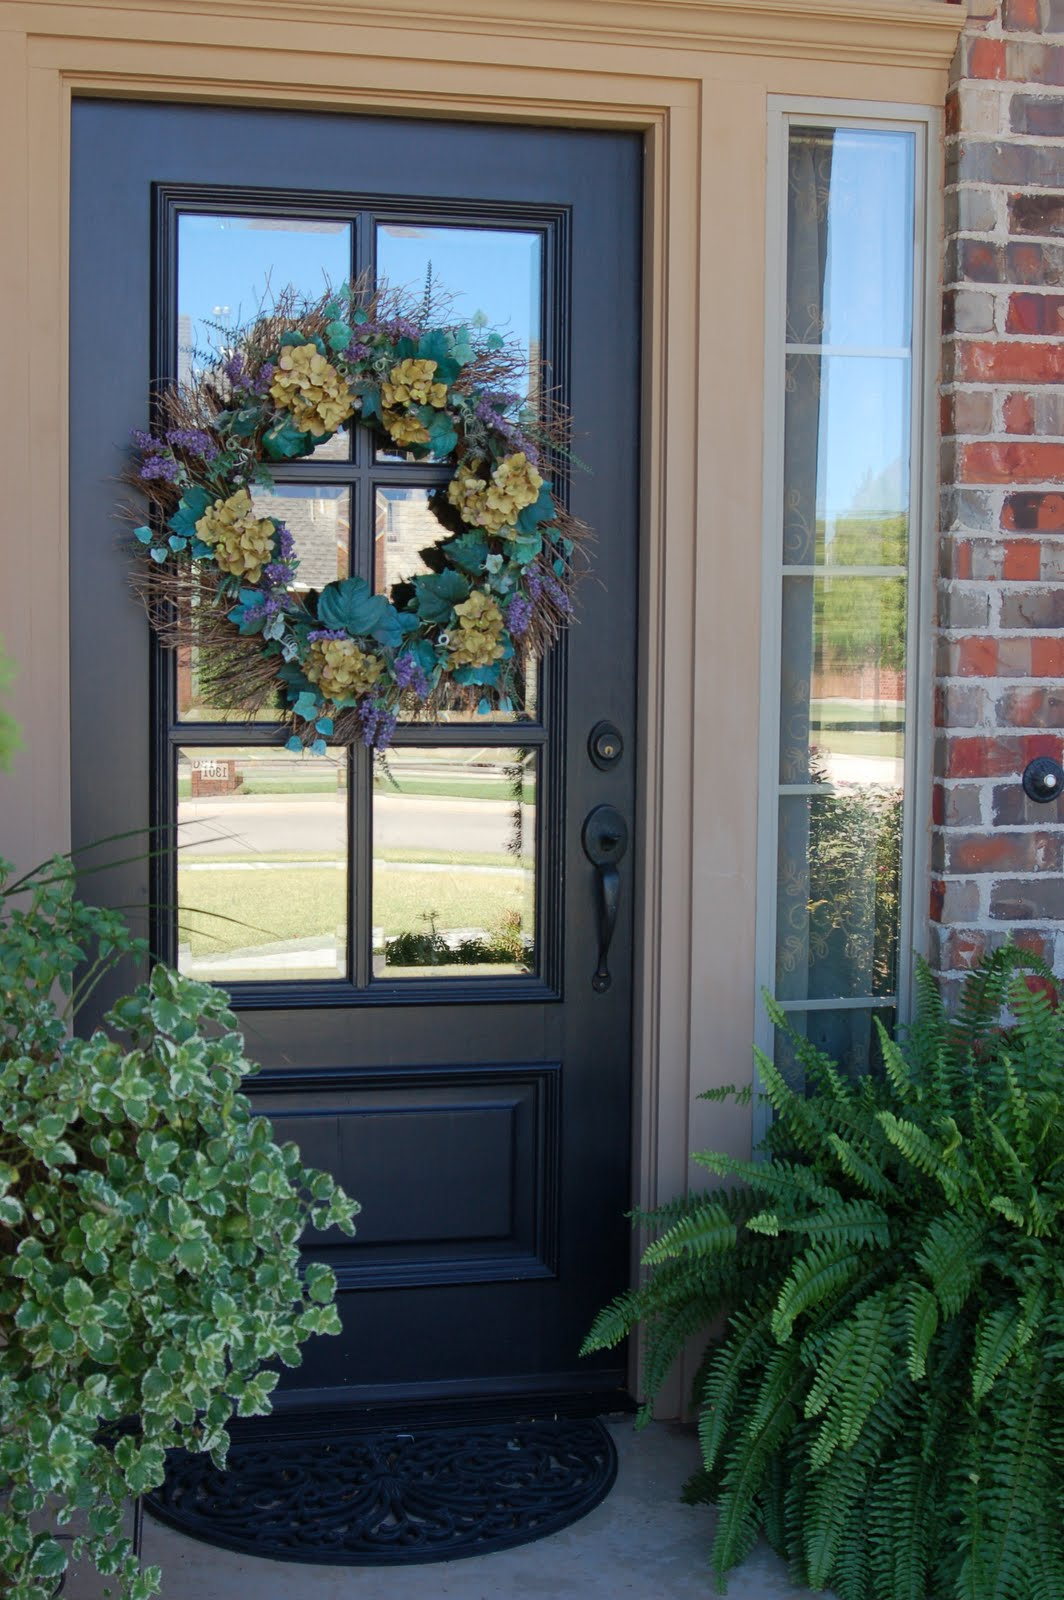 Window well decoration ideas   pretty spring front porch decorating ideas  front porches porch